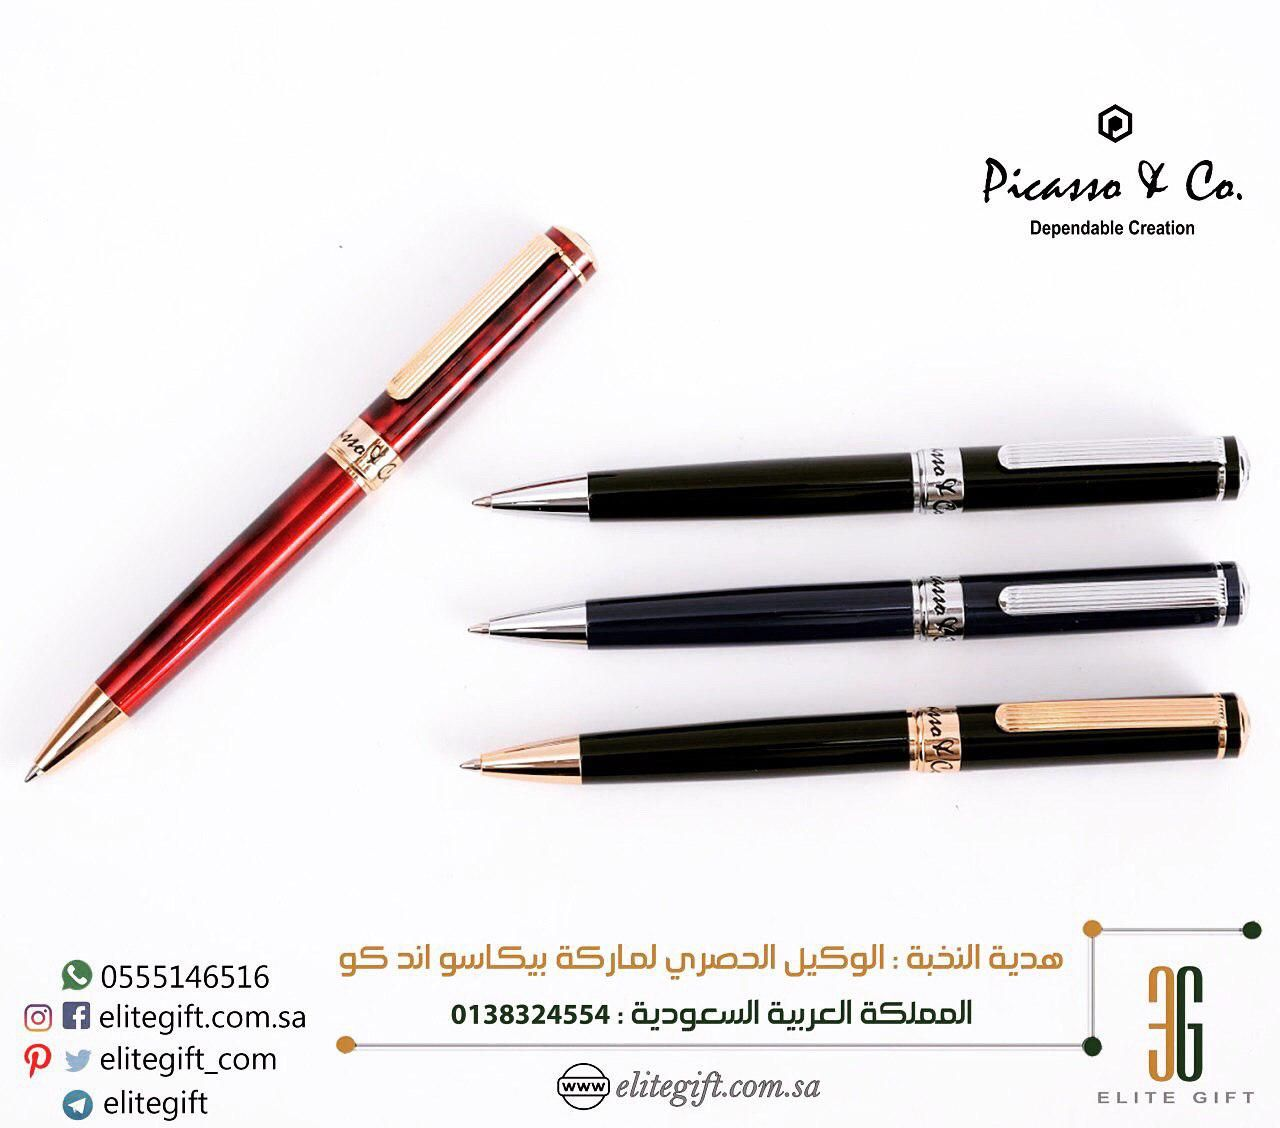 Picasso And Co Pen 902 Gentlman Writing Instruments Pen Writing